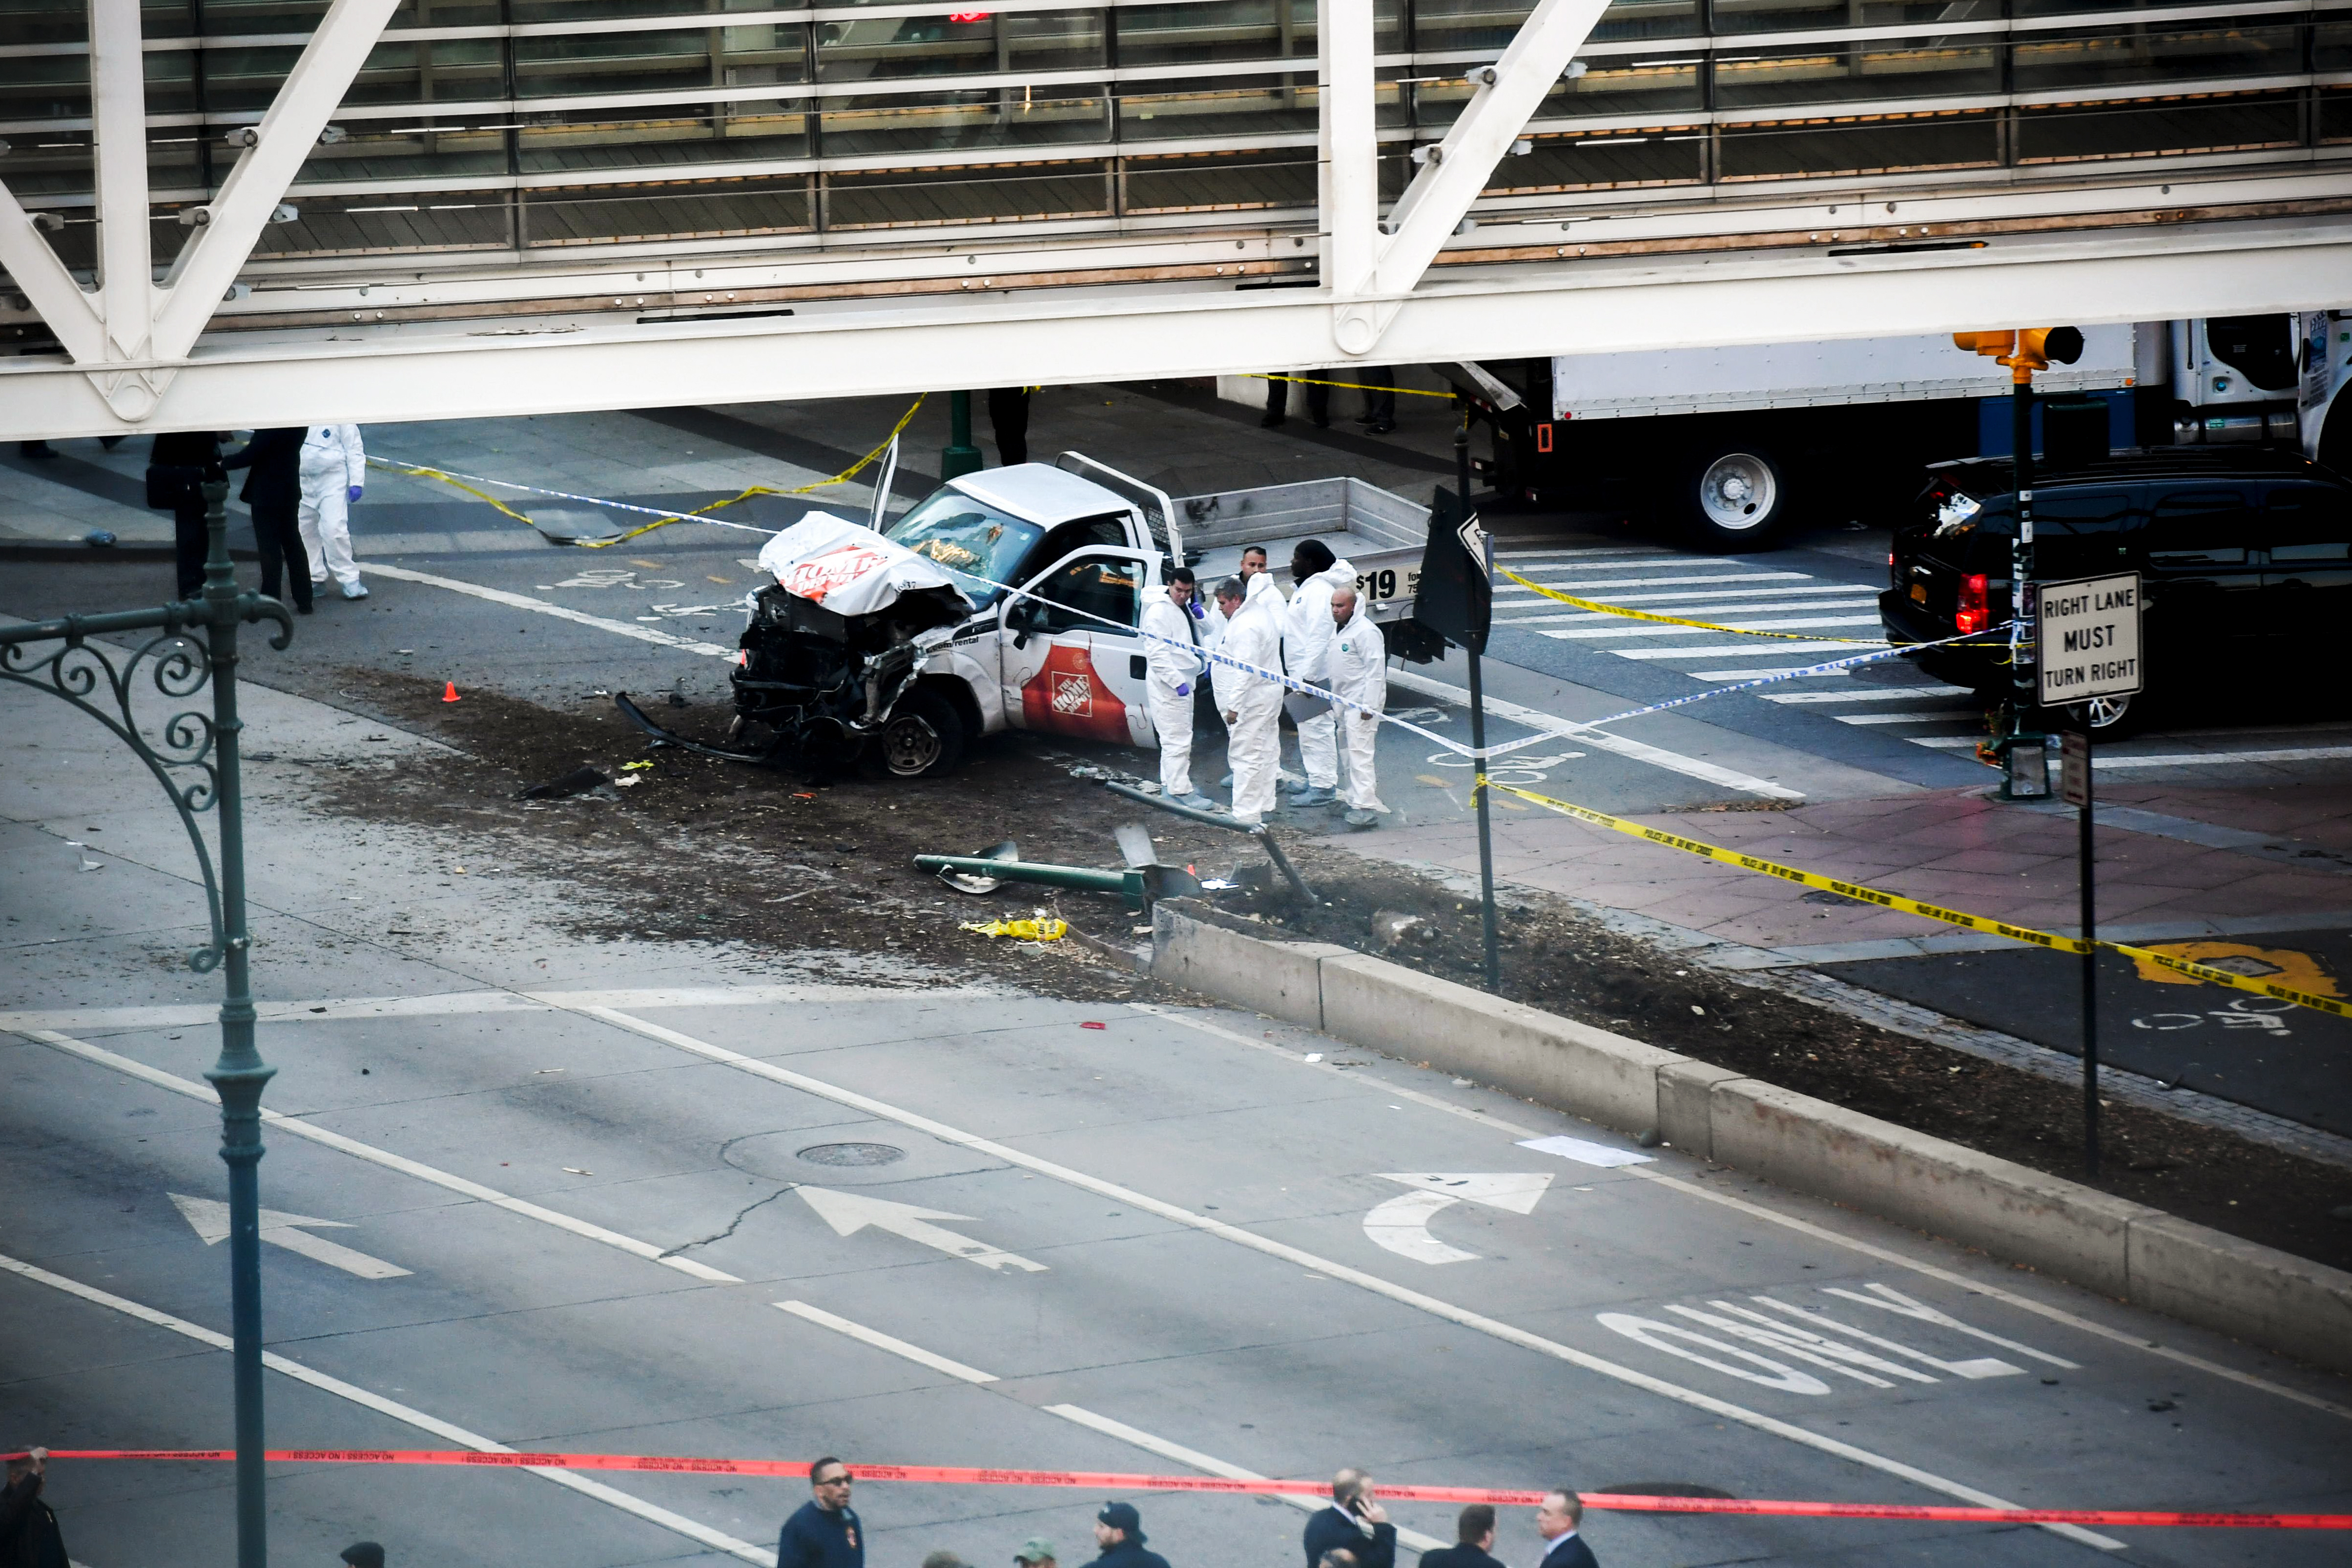 The New York attack shows why trucks are now the terrorist weapon of choice